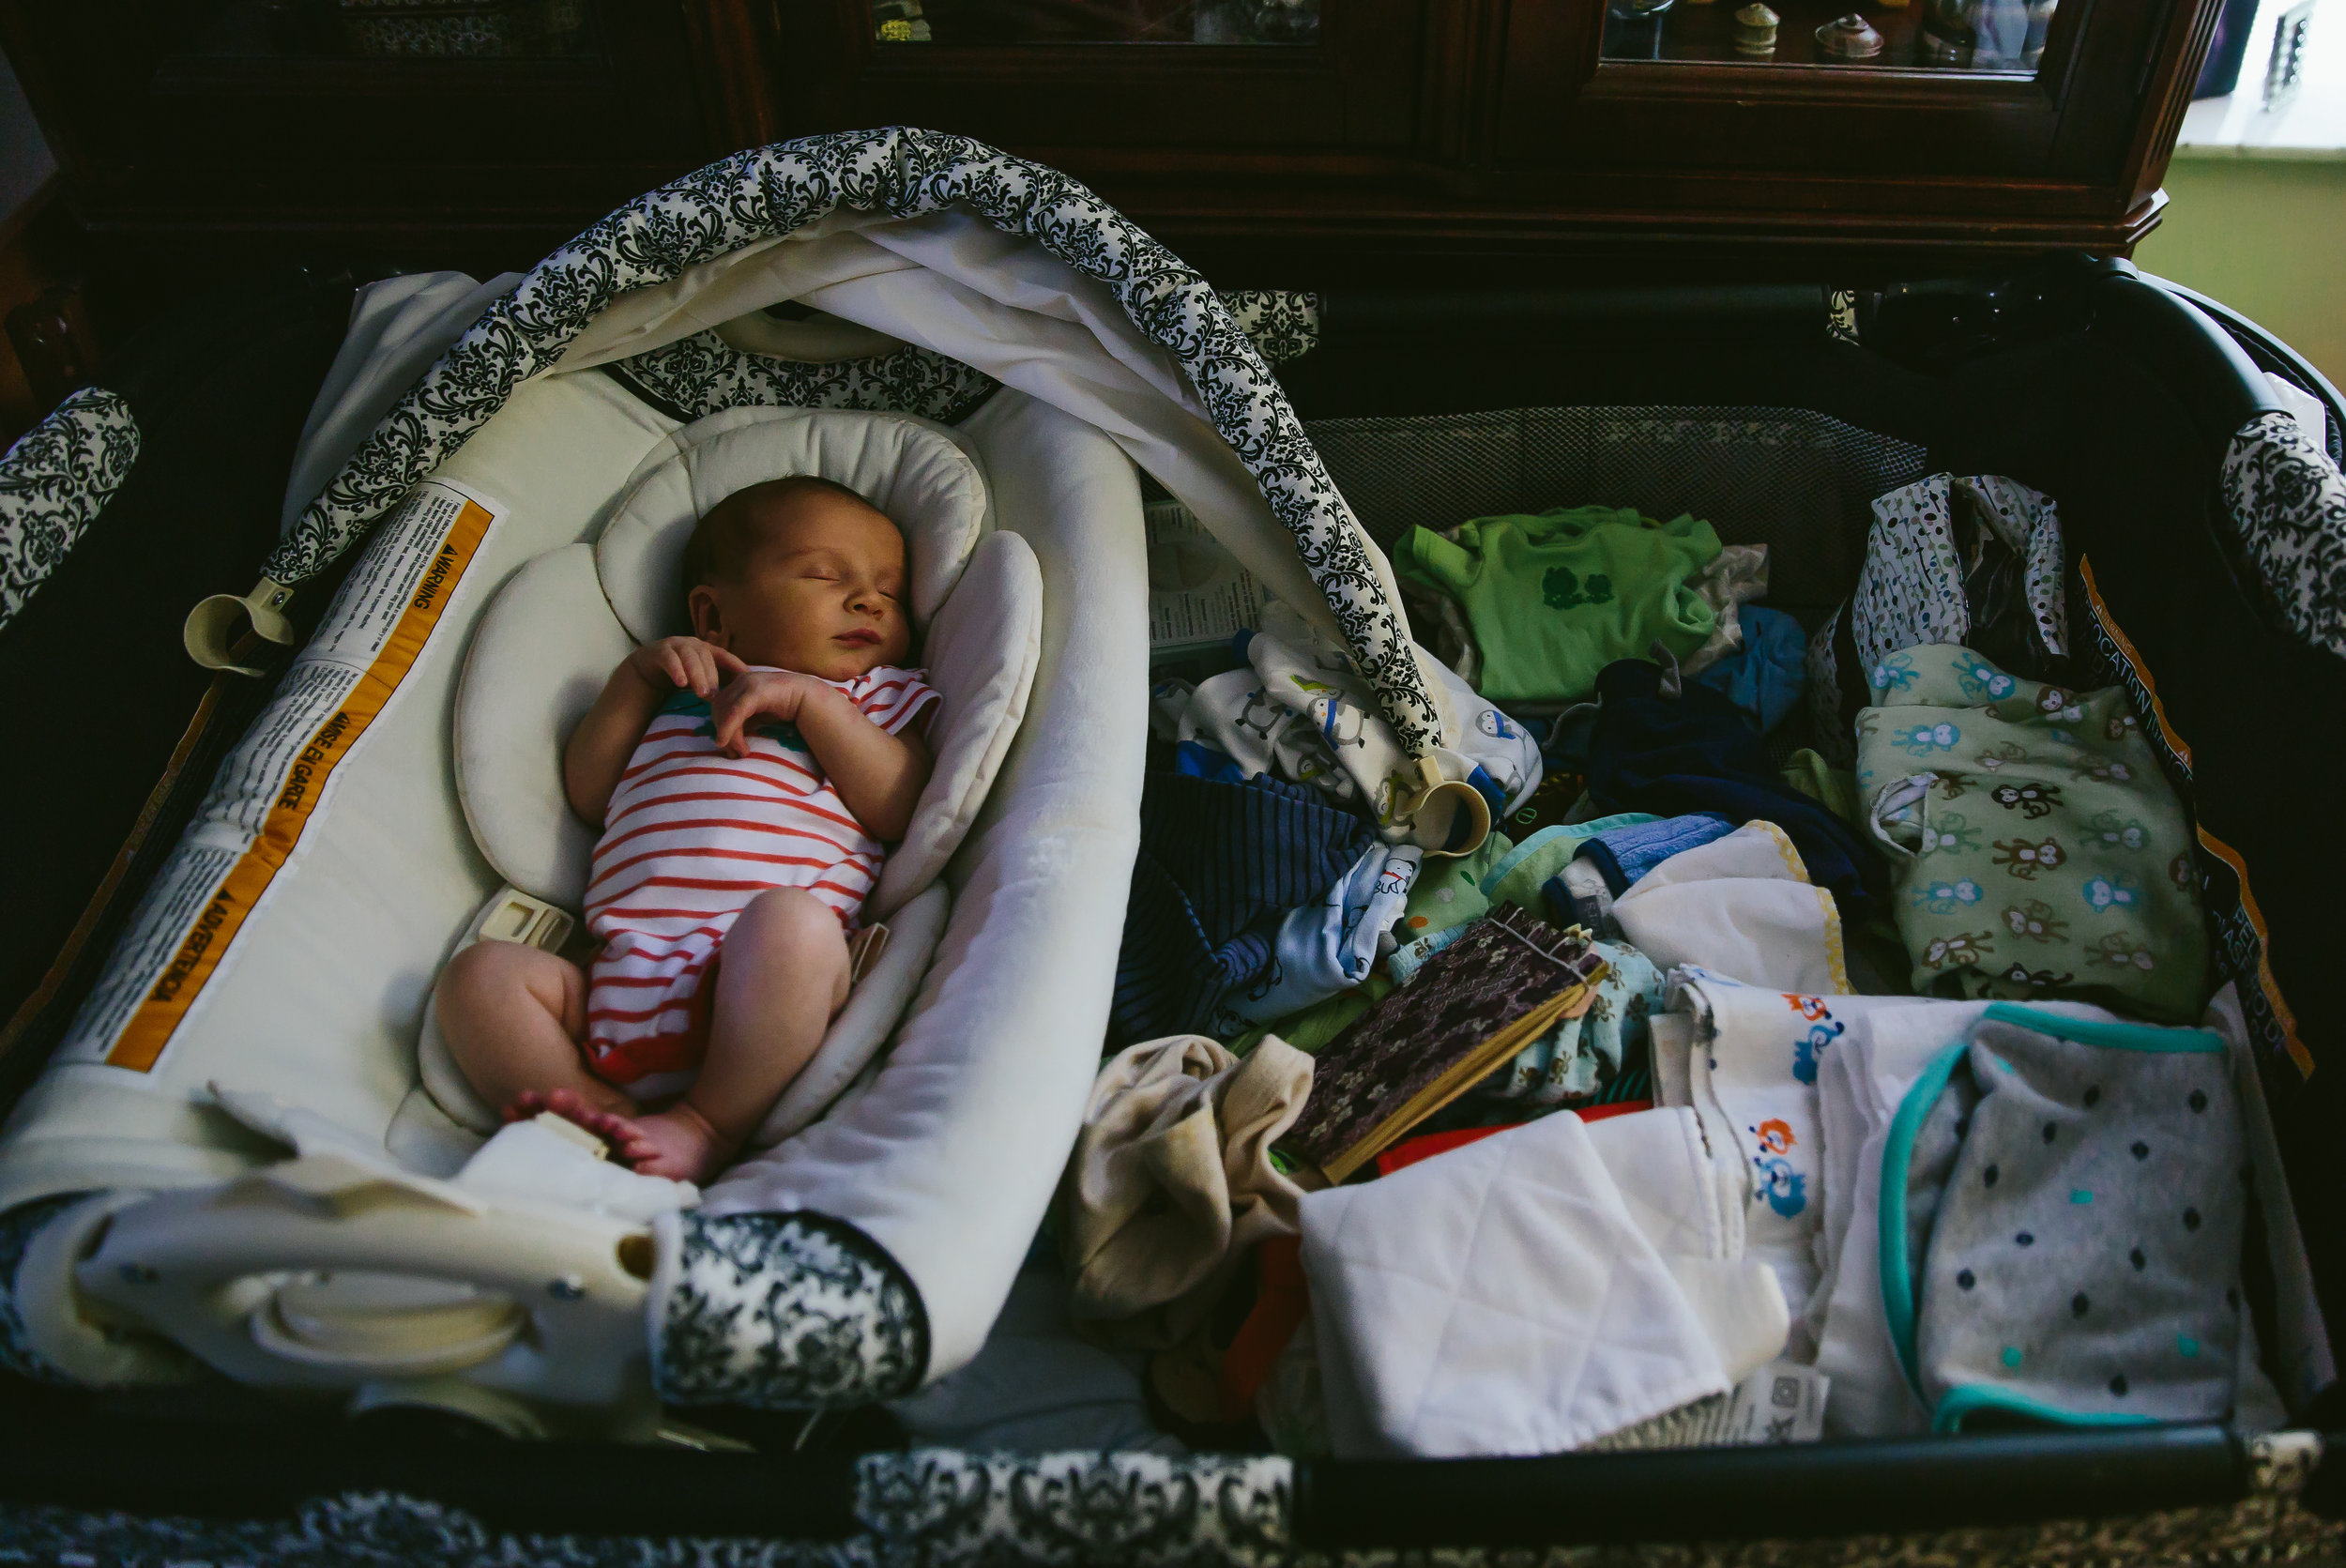 miami_documentary_newborn_photographer_steph_lynn_photo-11.jpg